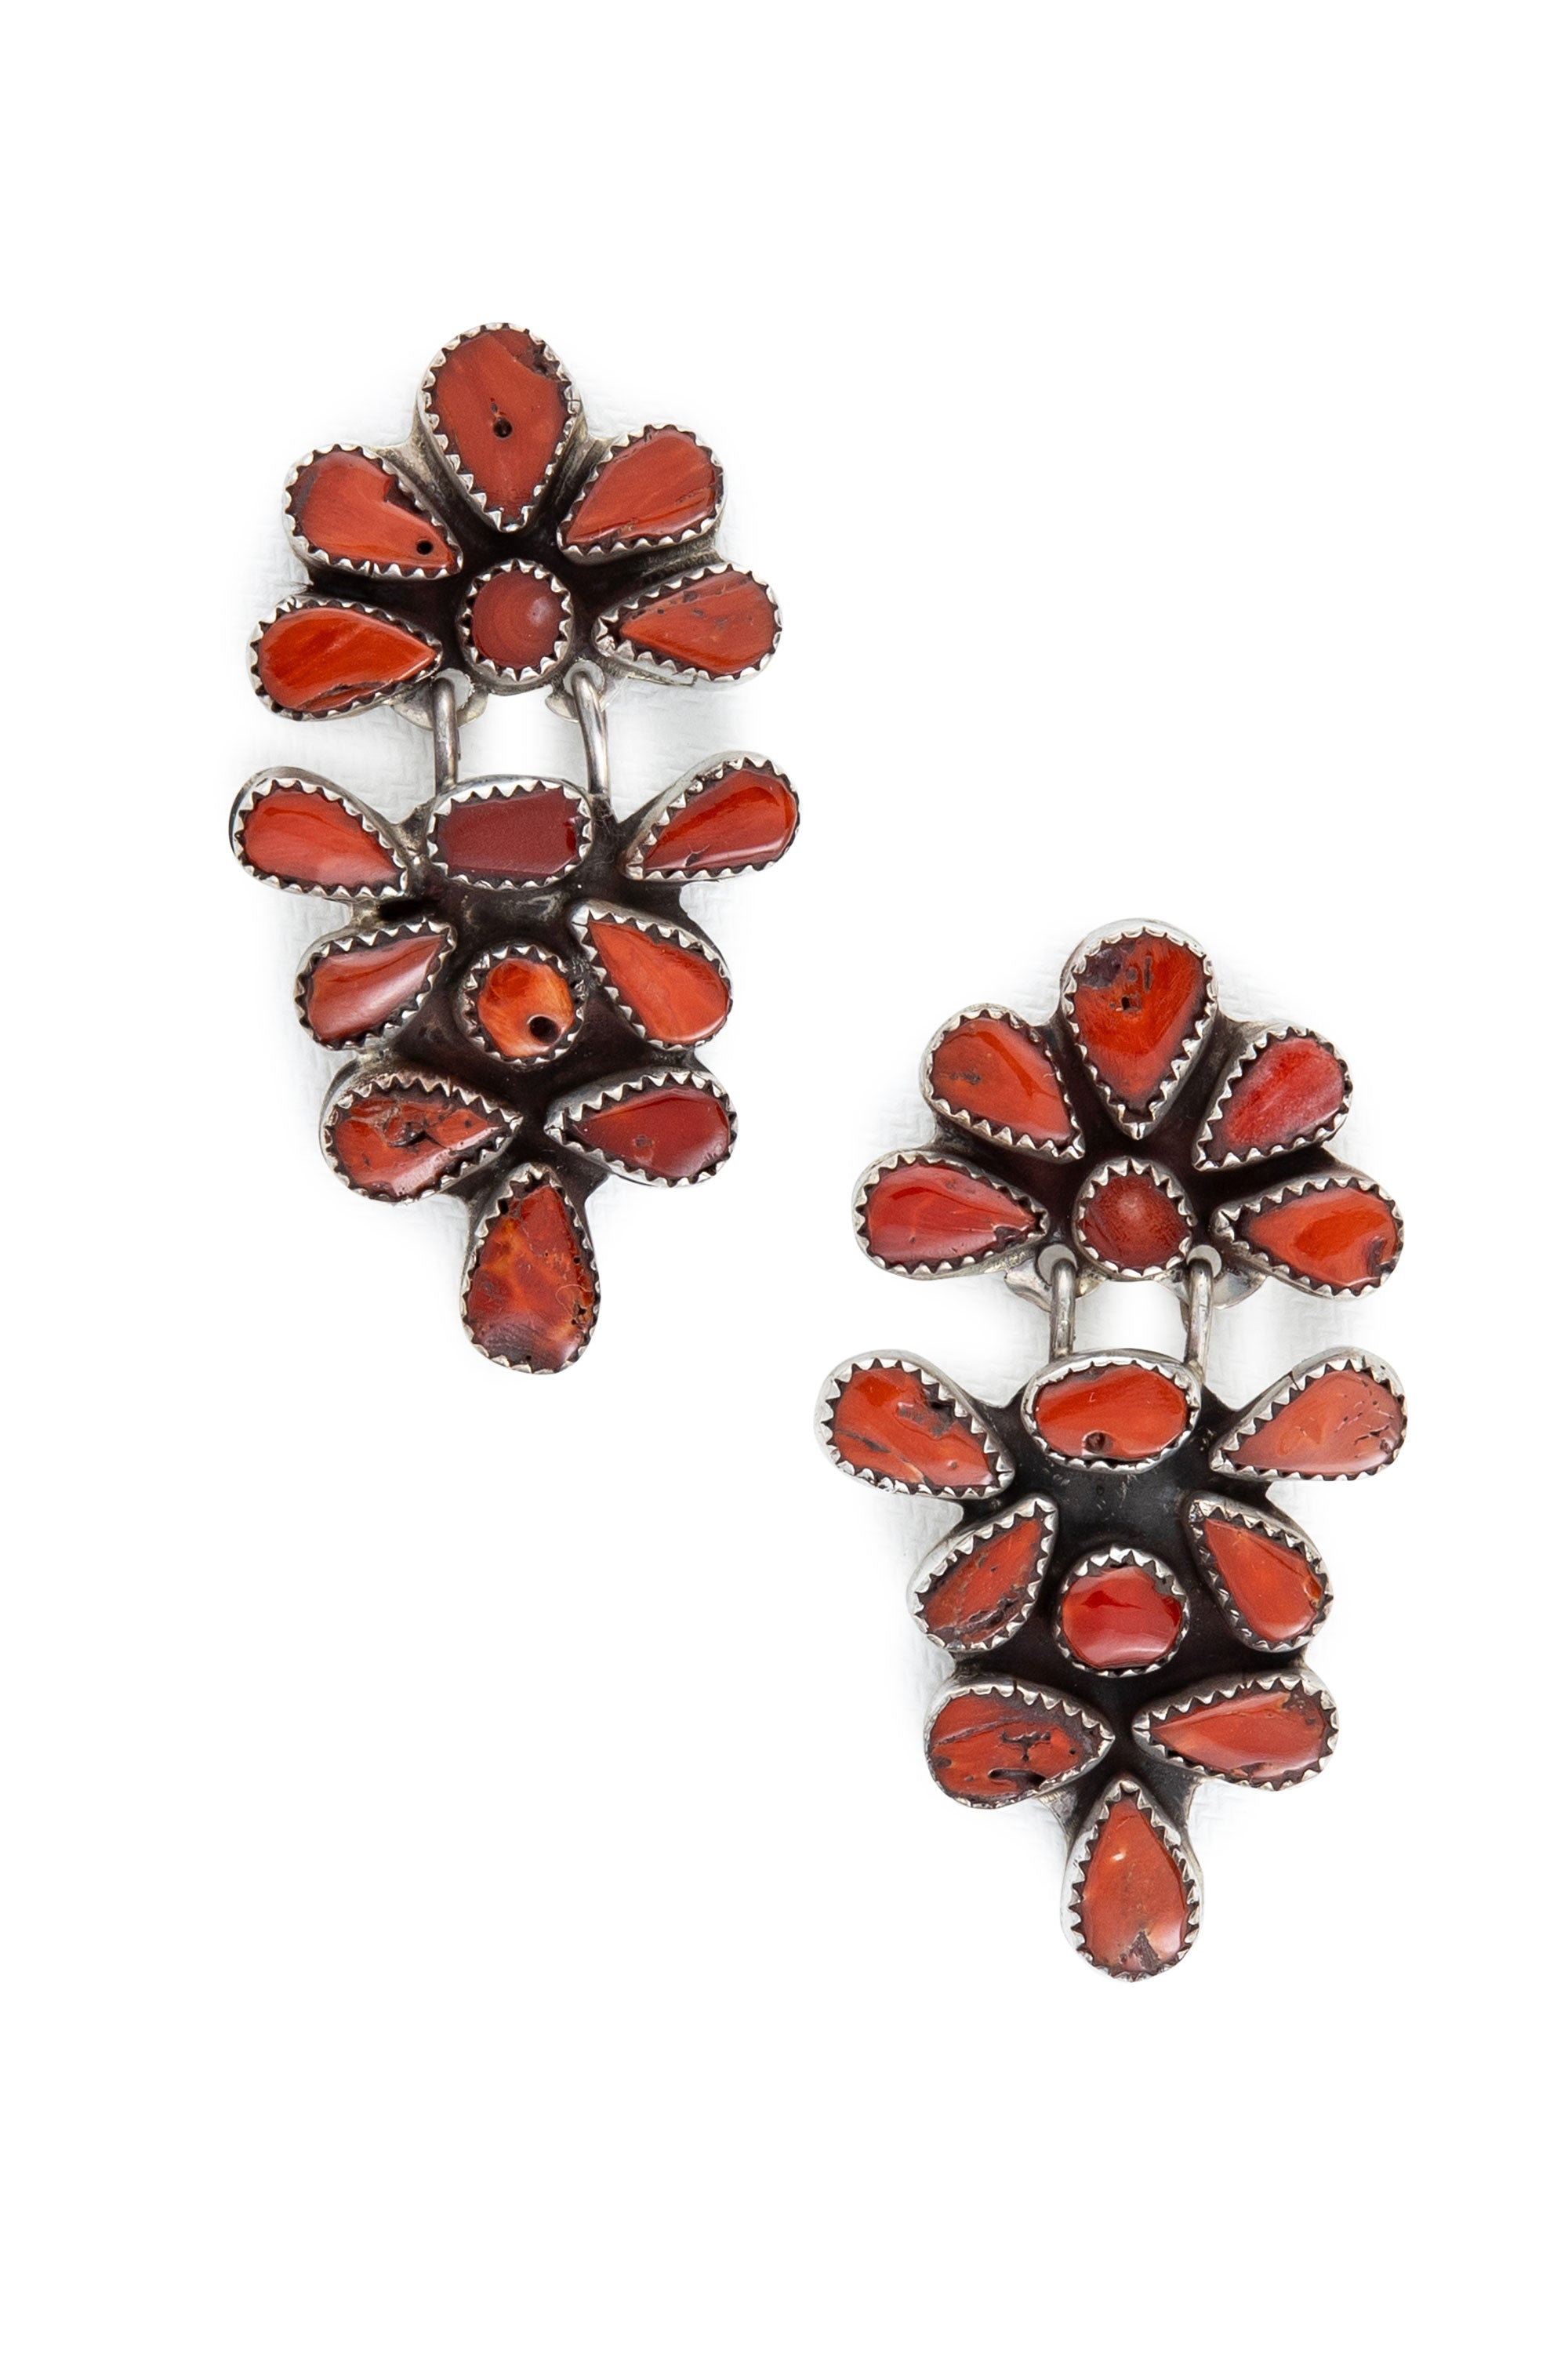 Earrings, Oscar Betz, Triangle, Spiny Coral, Hallmark, 585C1